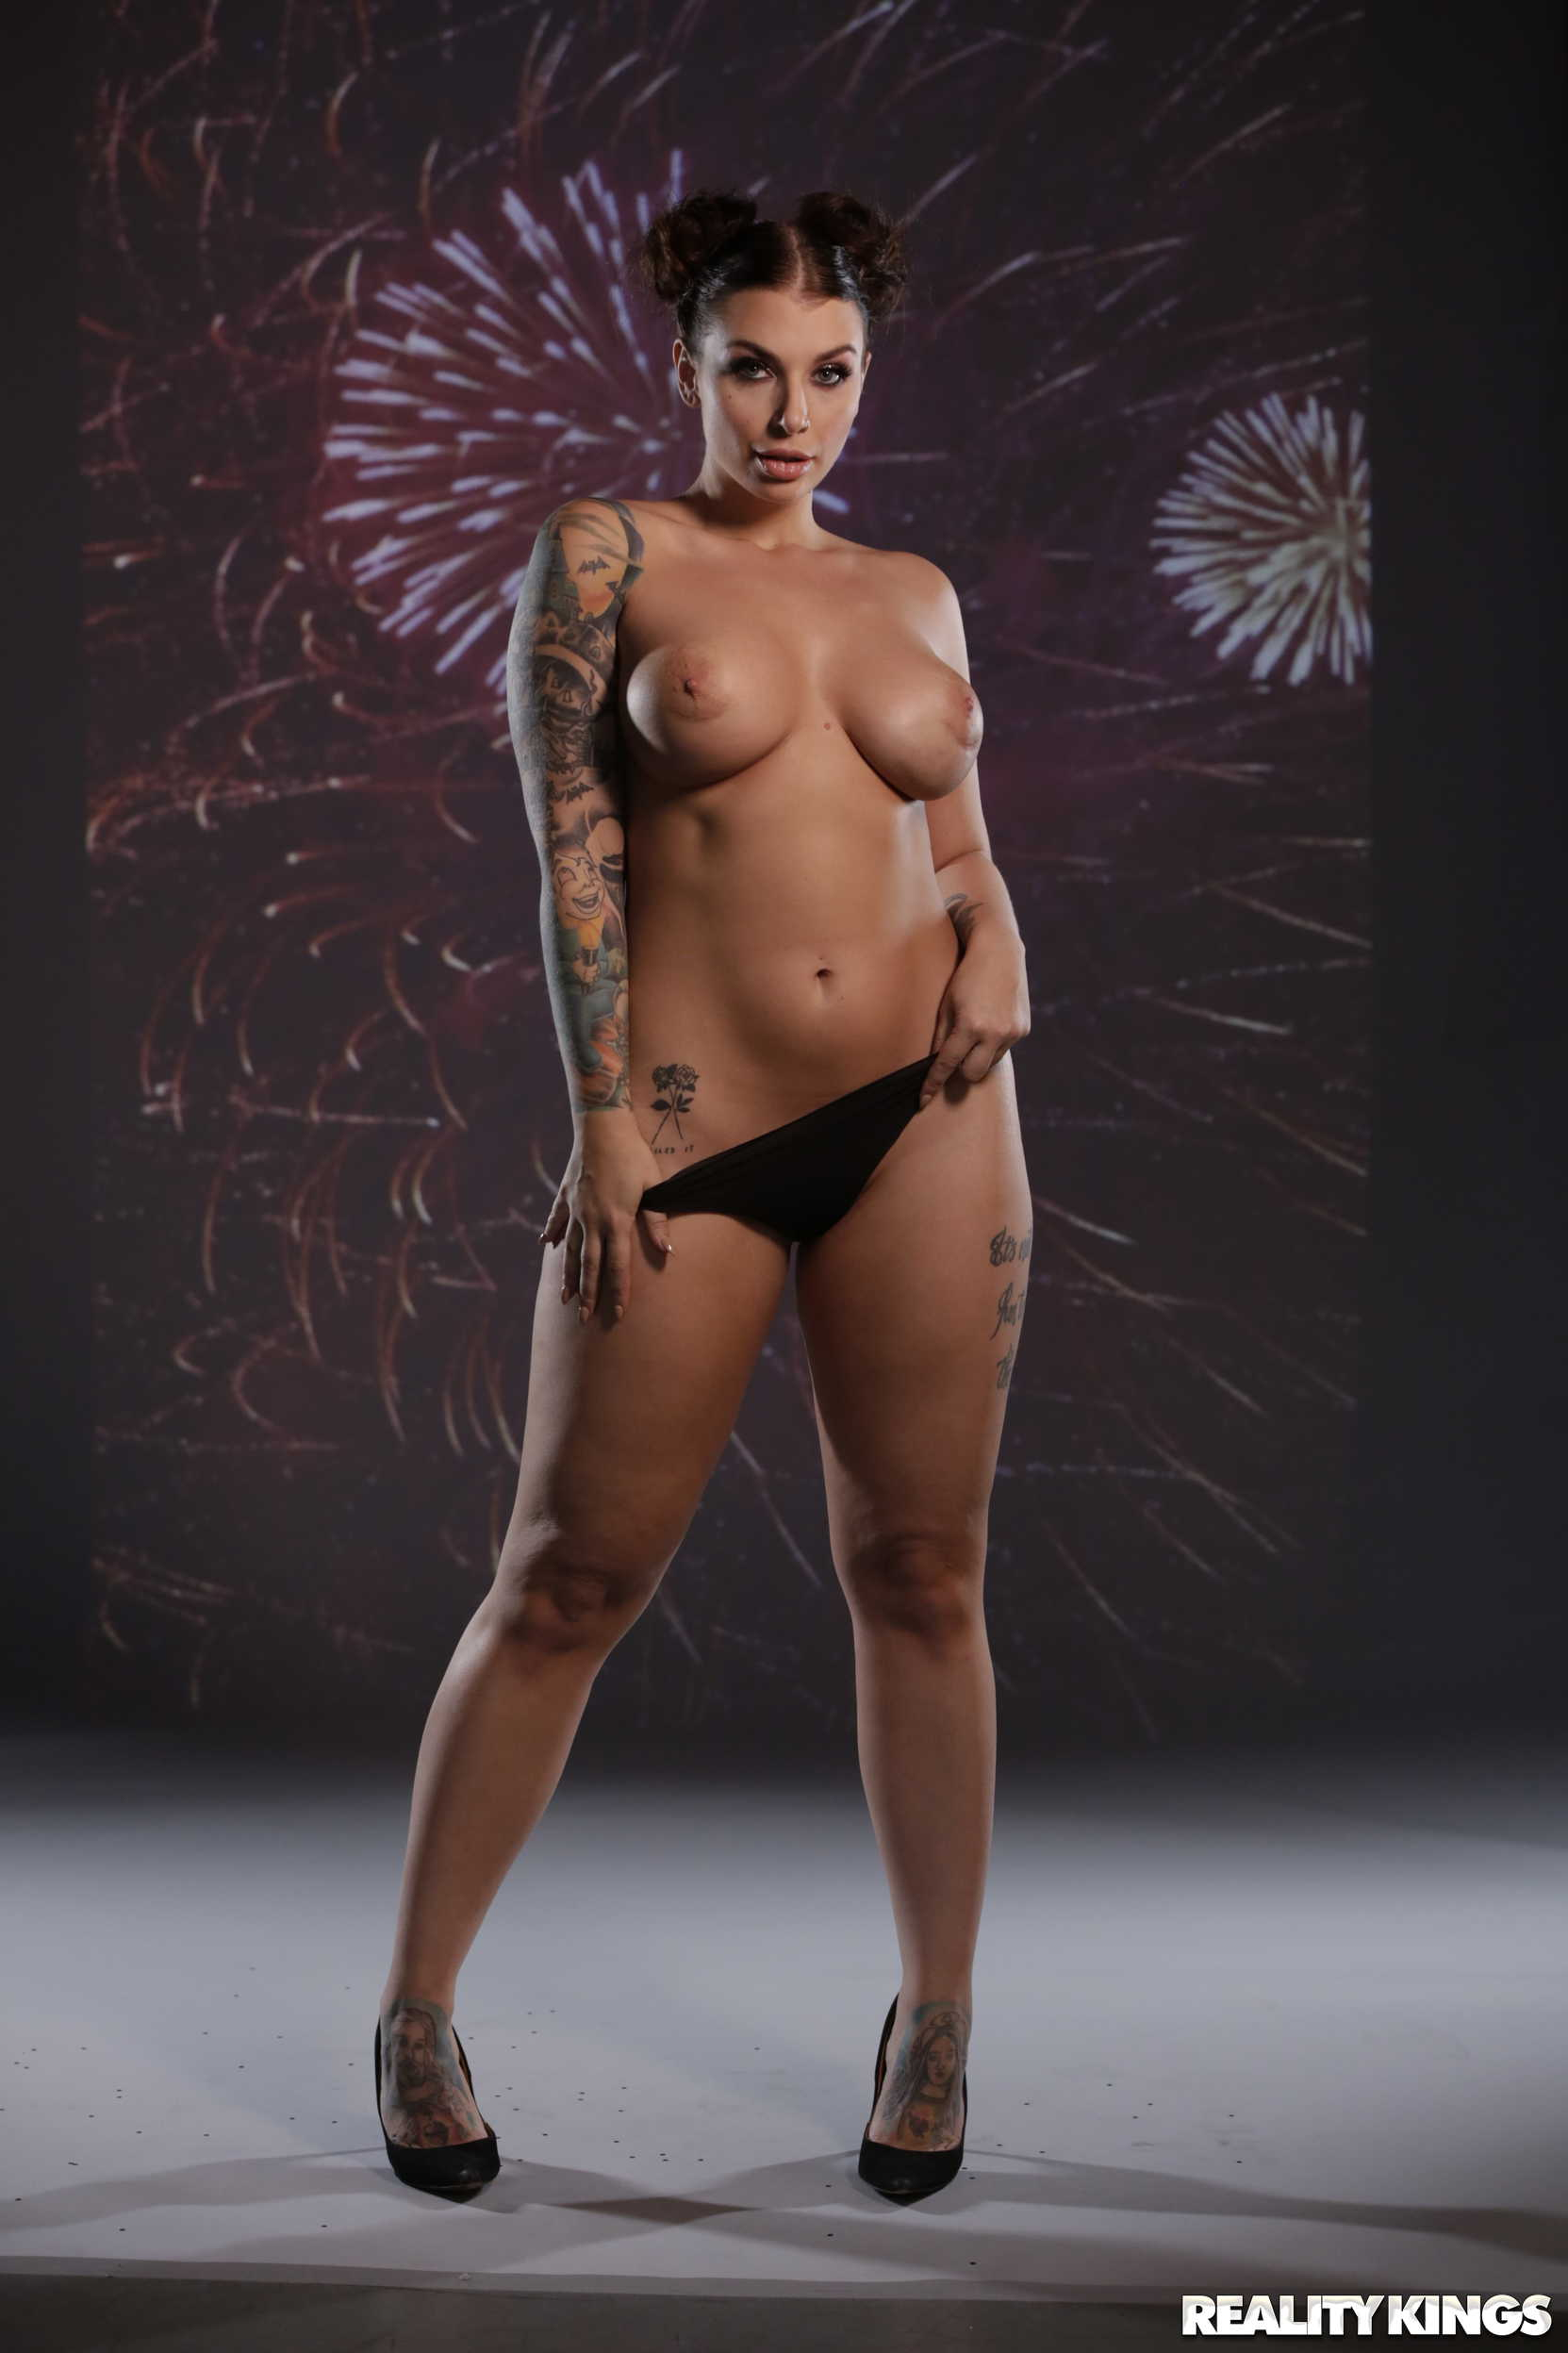 Reality Kings 'New Year New Rear' starring Gia Derza (Photo 64)